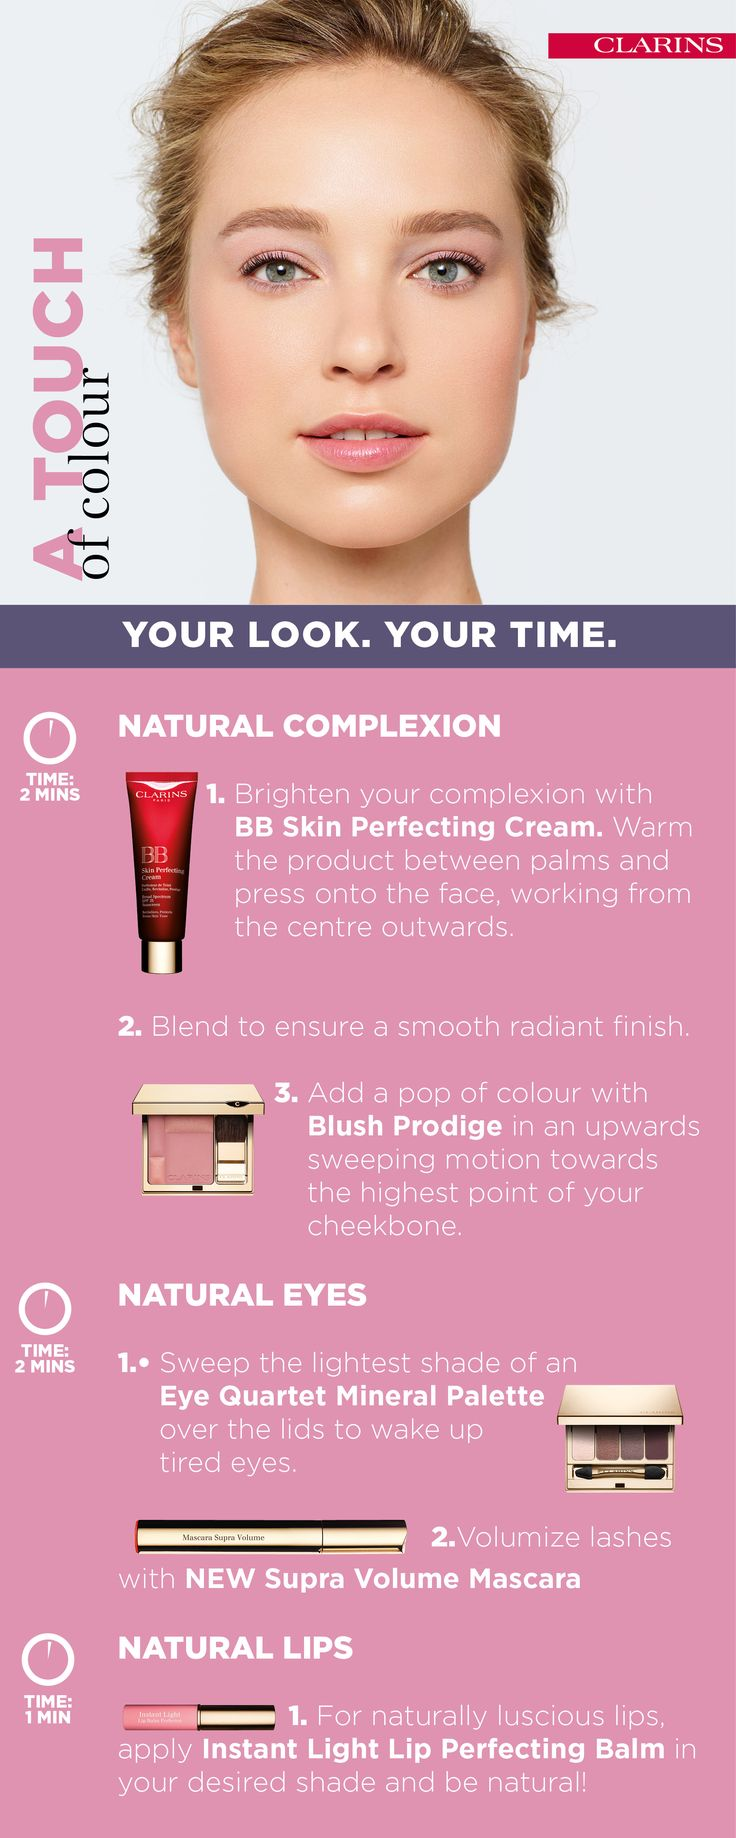 Your look A TOUCH OF COLOUR Achieve a natural look with these quick and easy steps. Create your perfect look now on Clarins.com